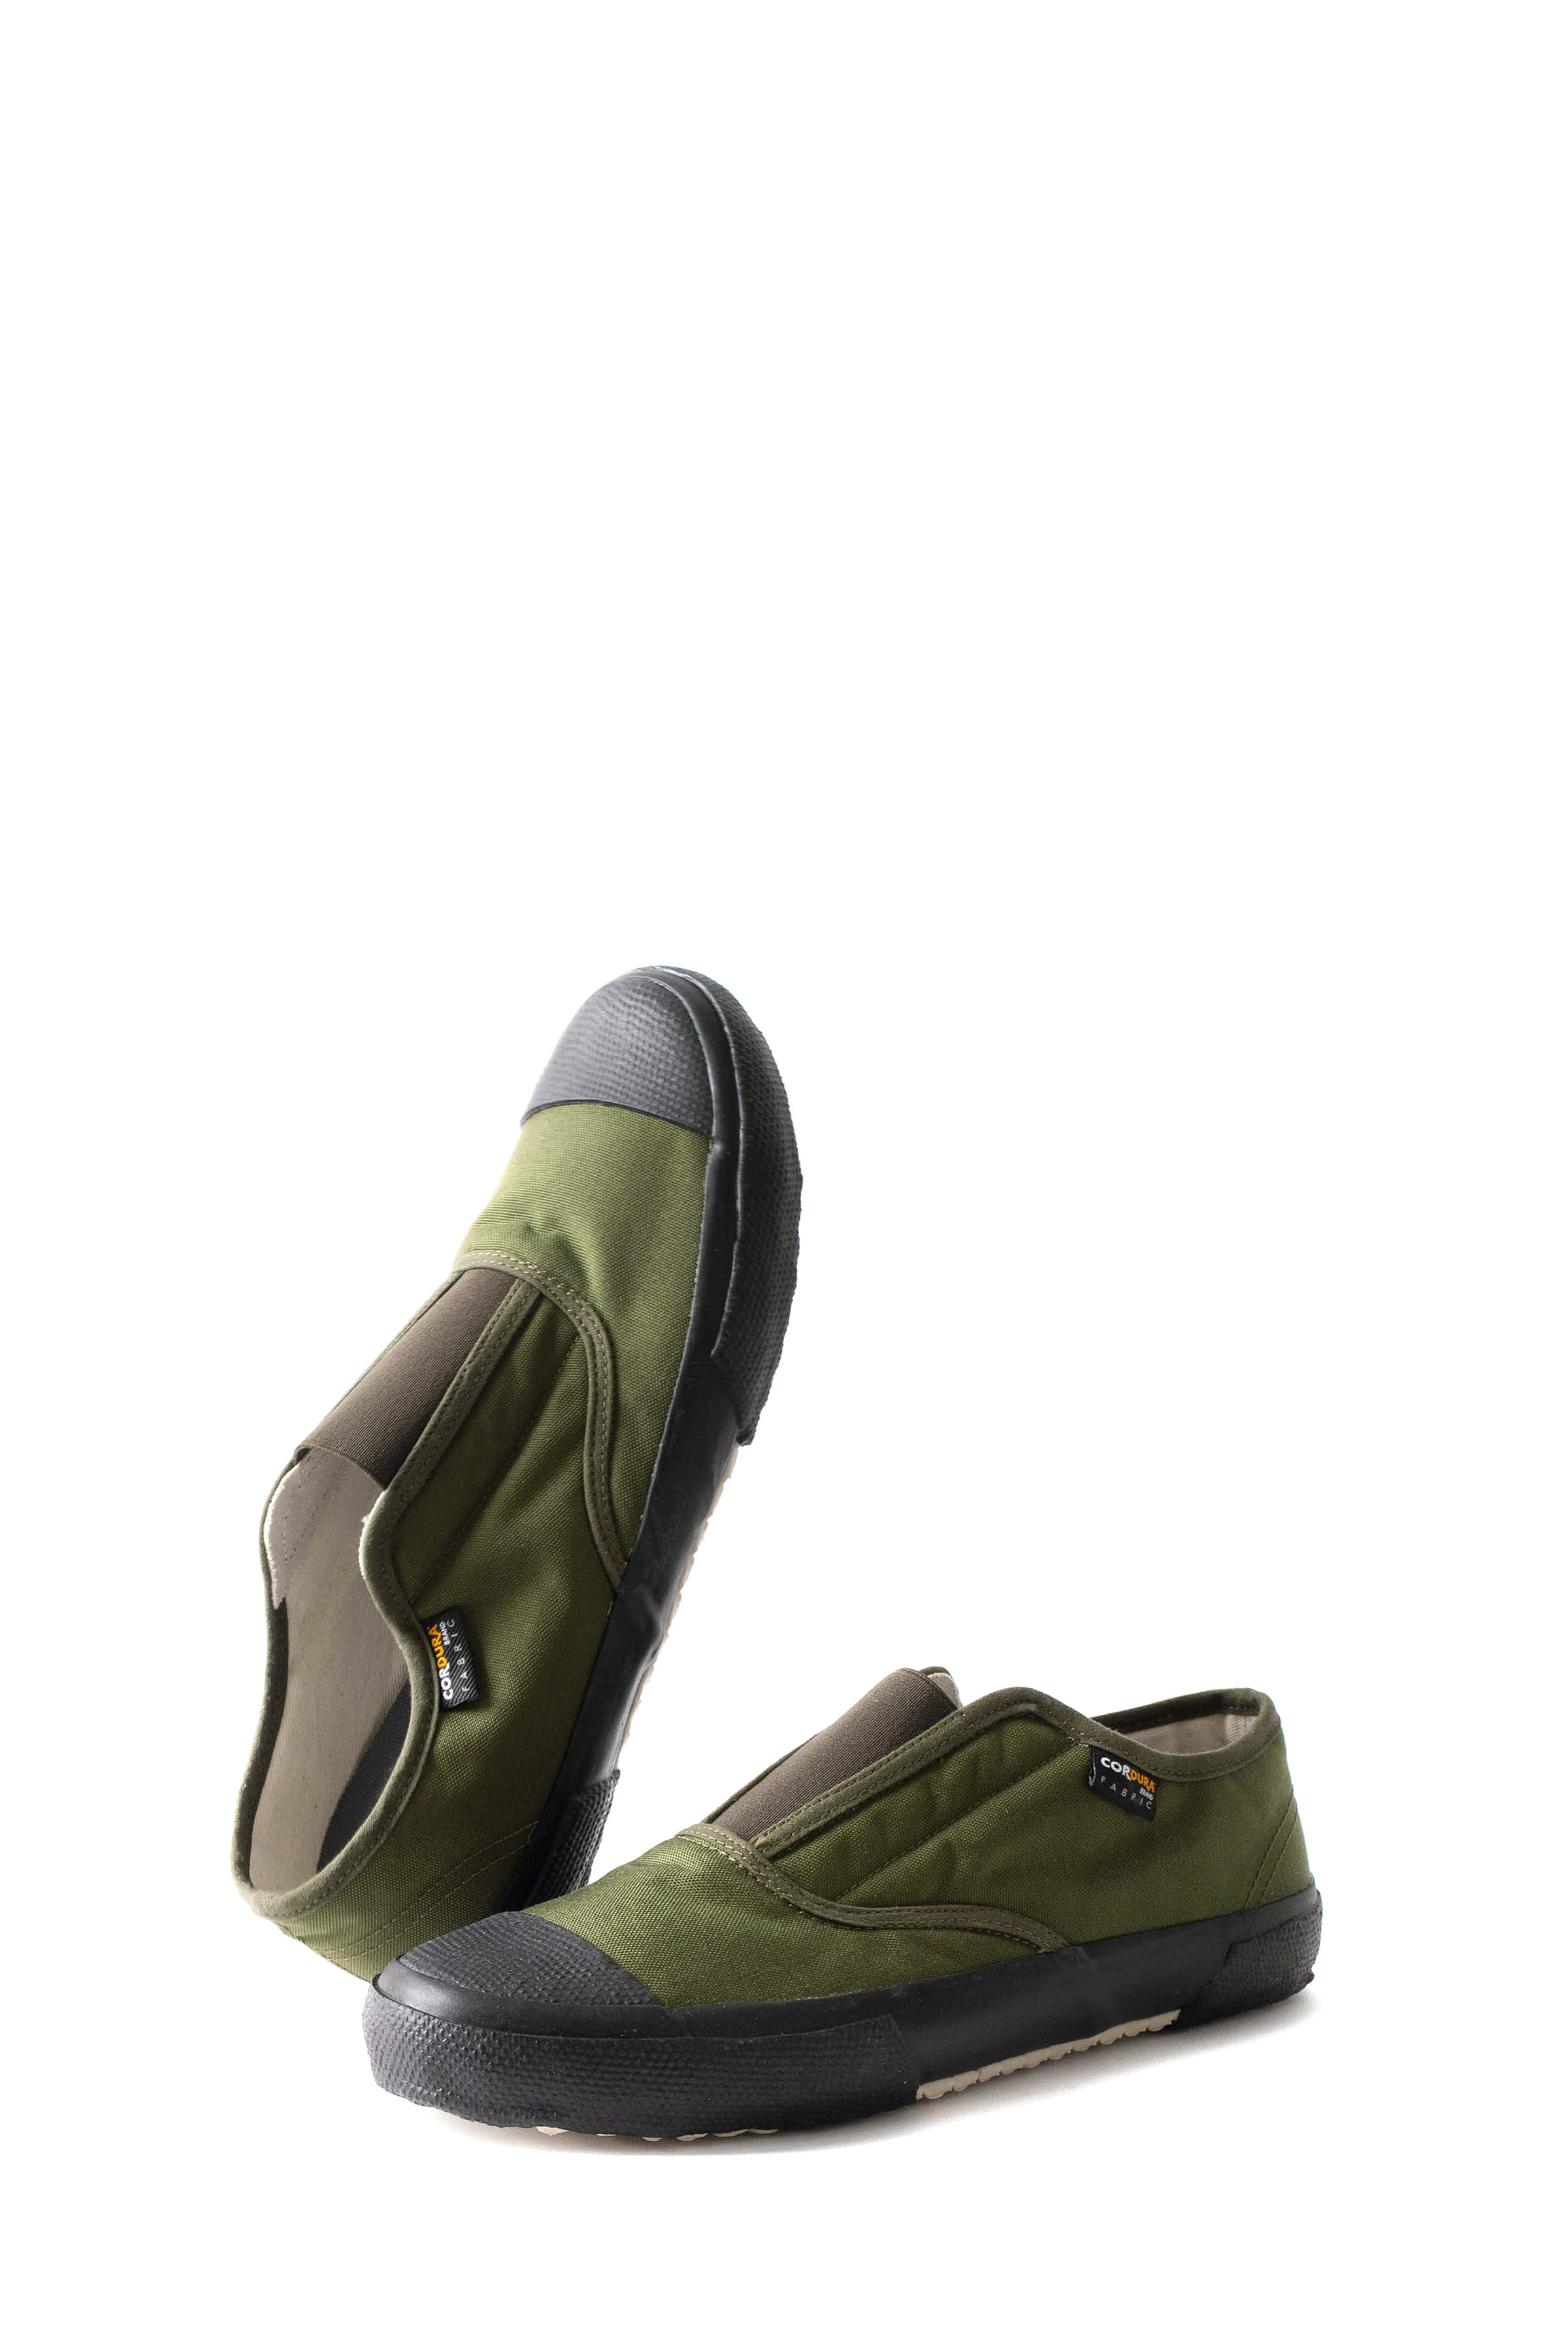 REPRODUCTION OF FOUND : Italian Military Trainer 3000C (Olive)